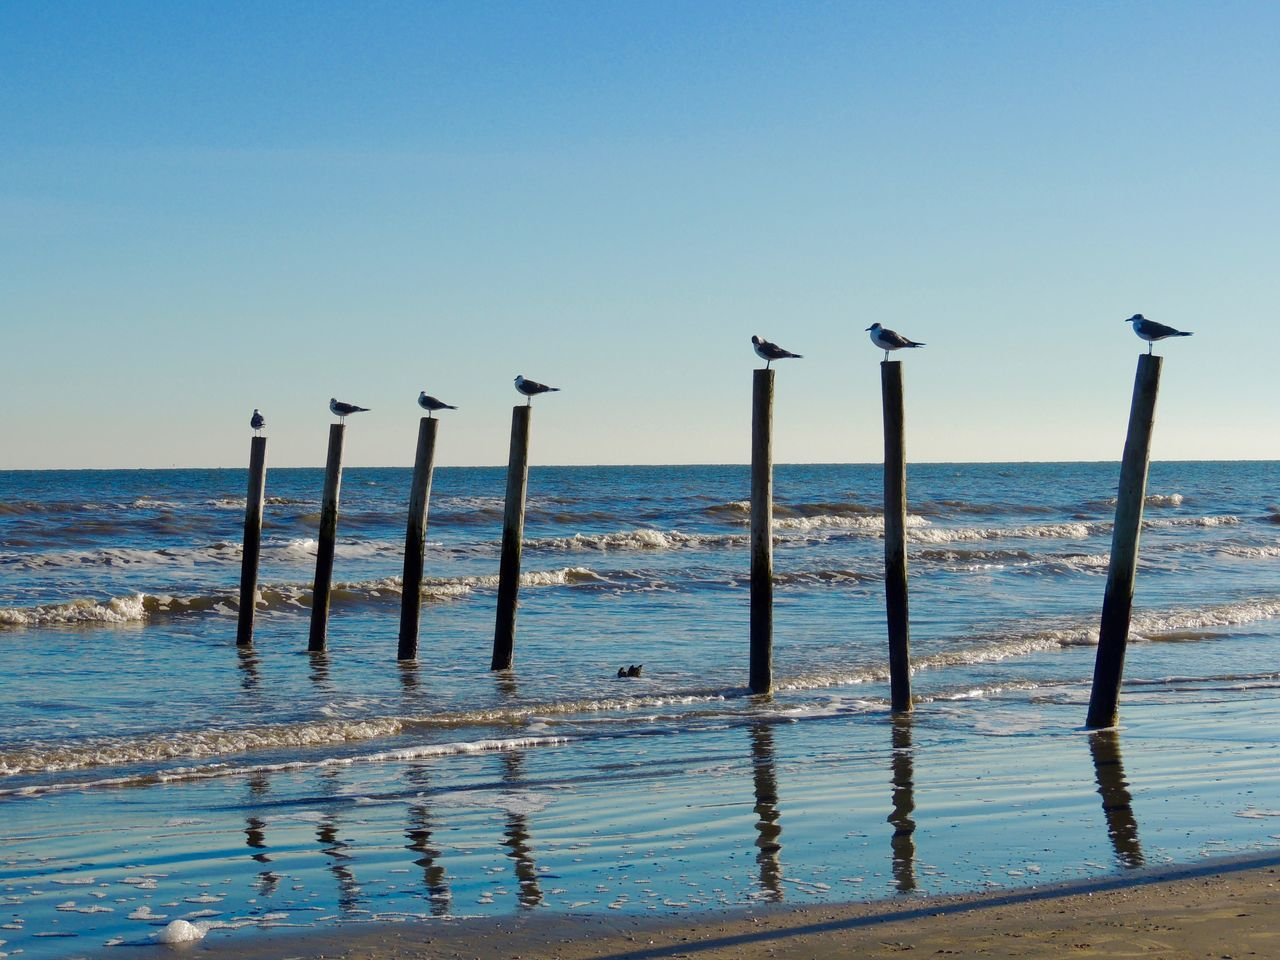 water, sea, wooden post, no people, day, nature, outdoors, horizon over water, clear sky, beauty in nature, scenics, bird, sky, beach, blue, animal themes